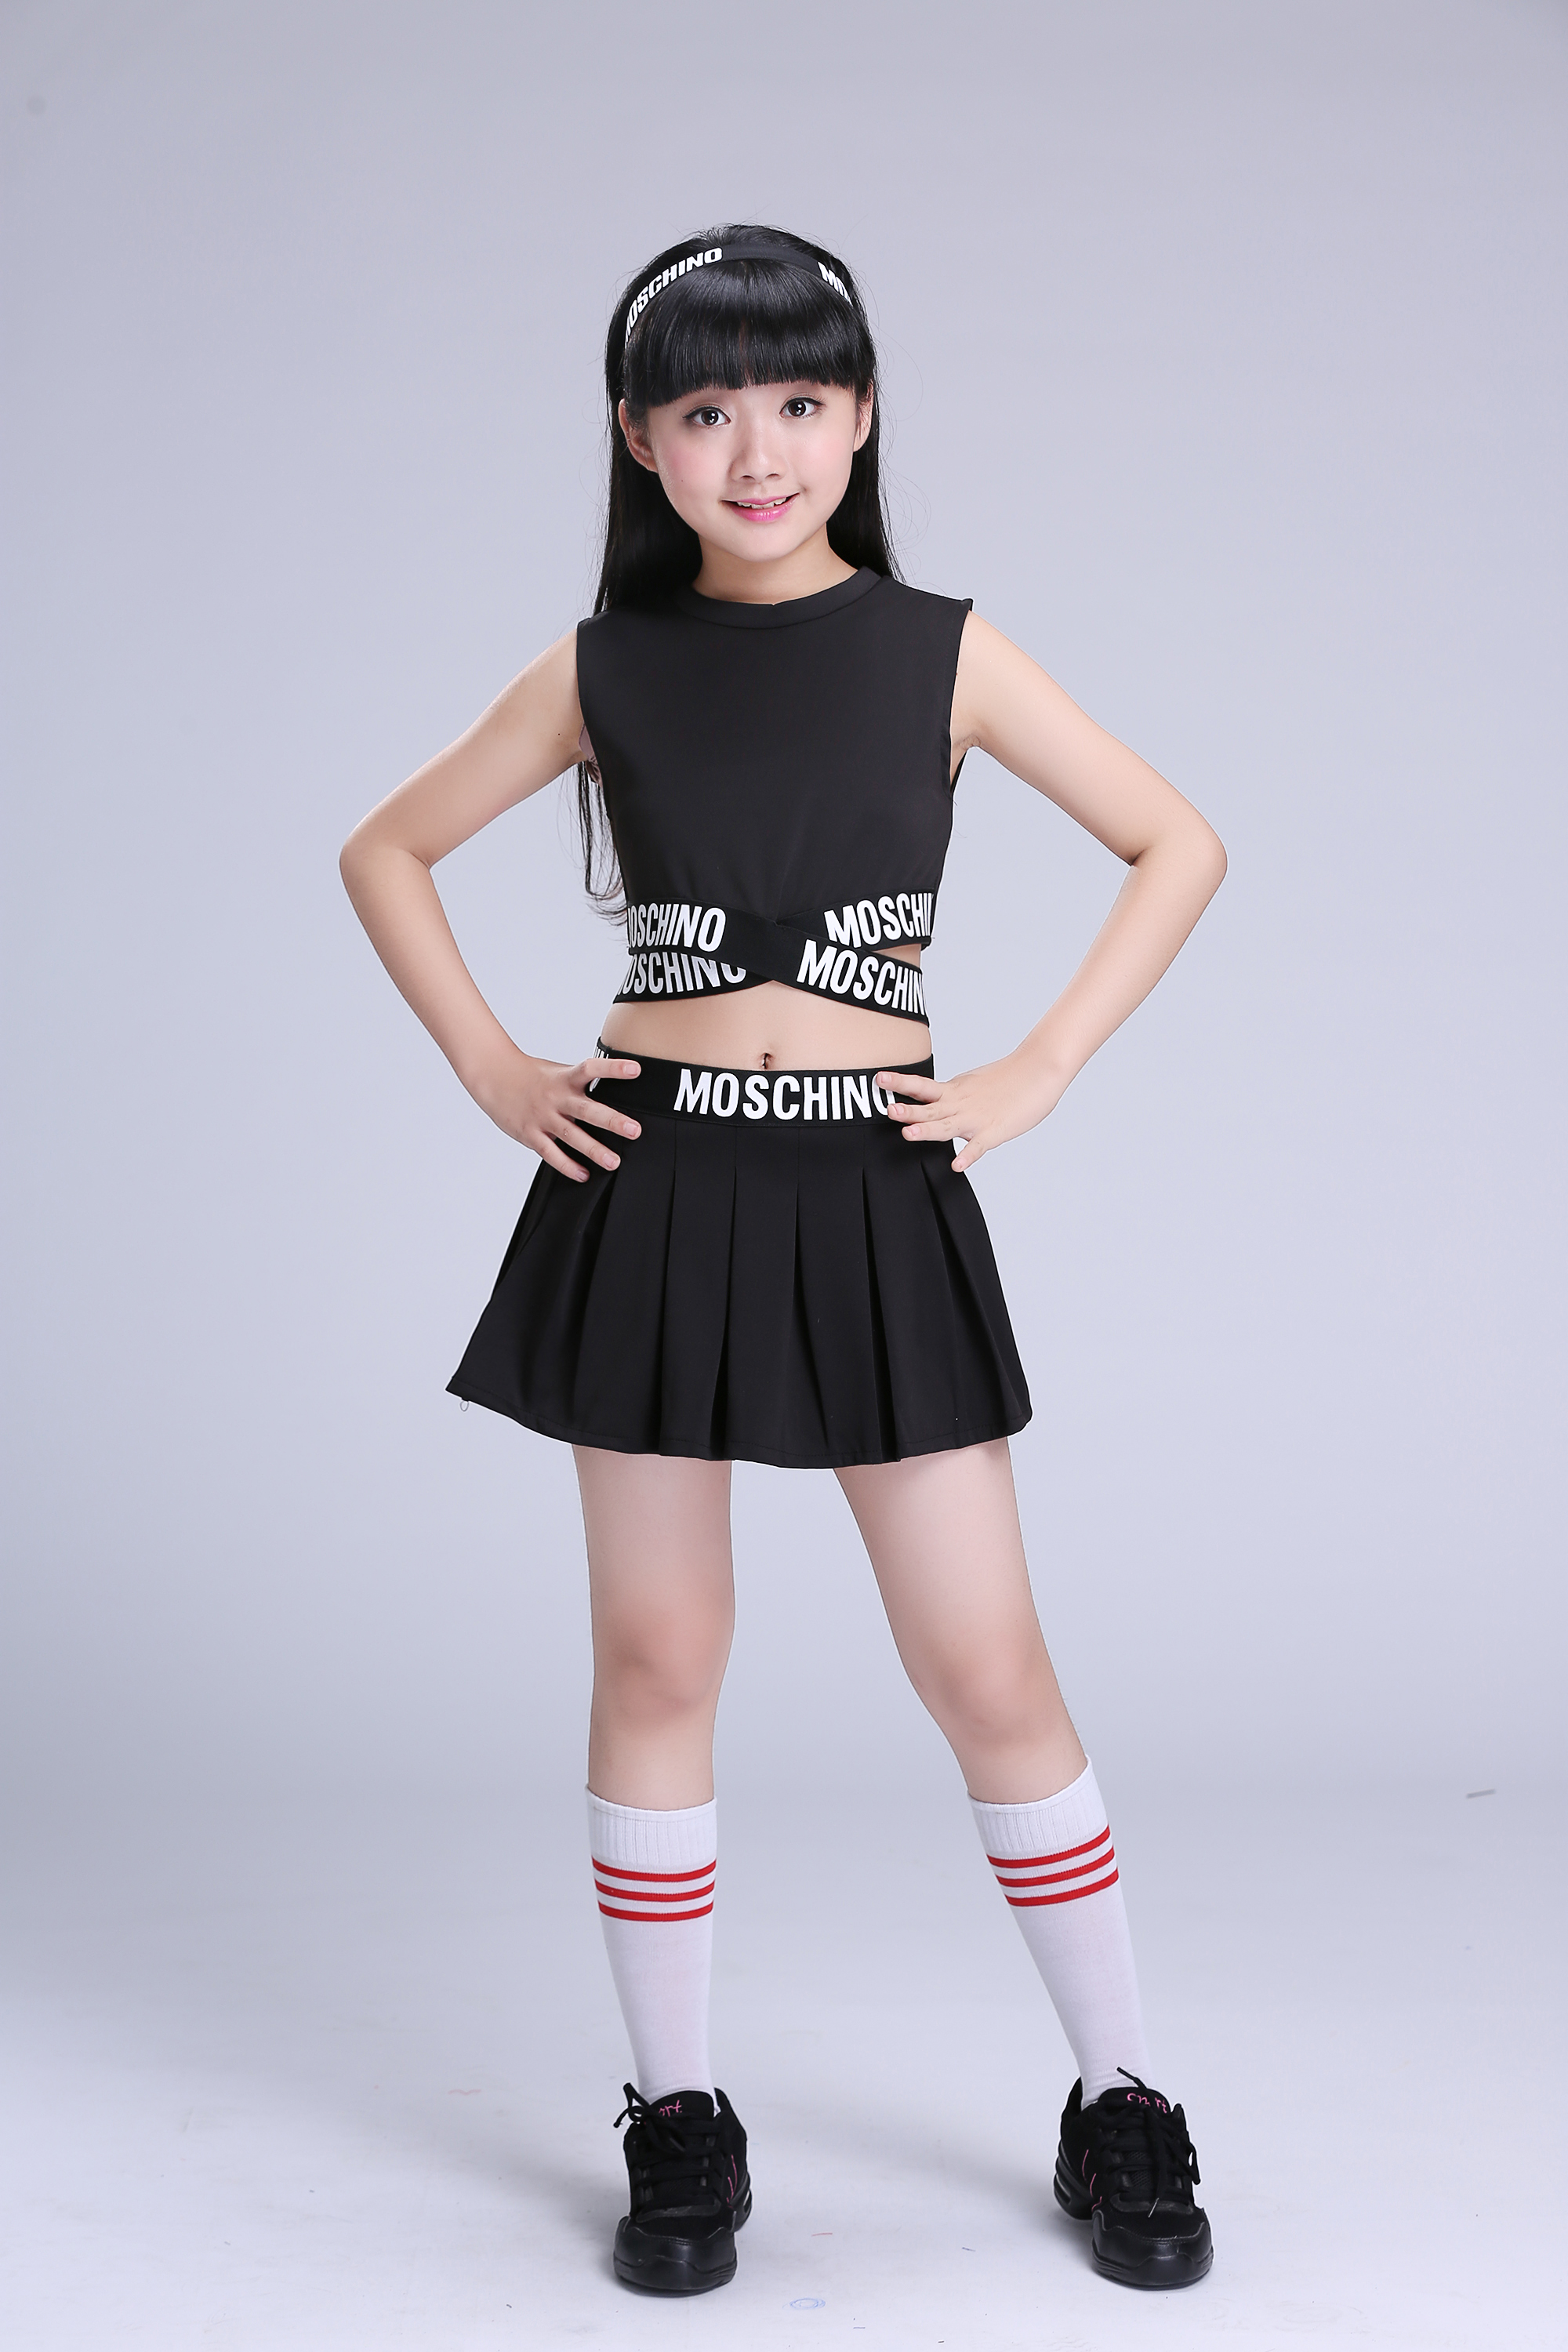 Girls Black Jazz Dance Performance Hip Hop Clothing Childrens Cheerleading -7912